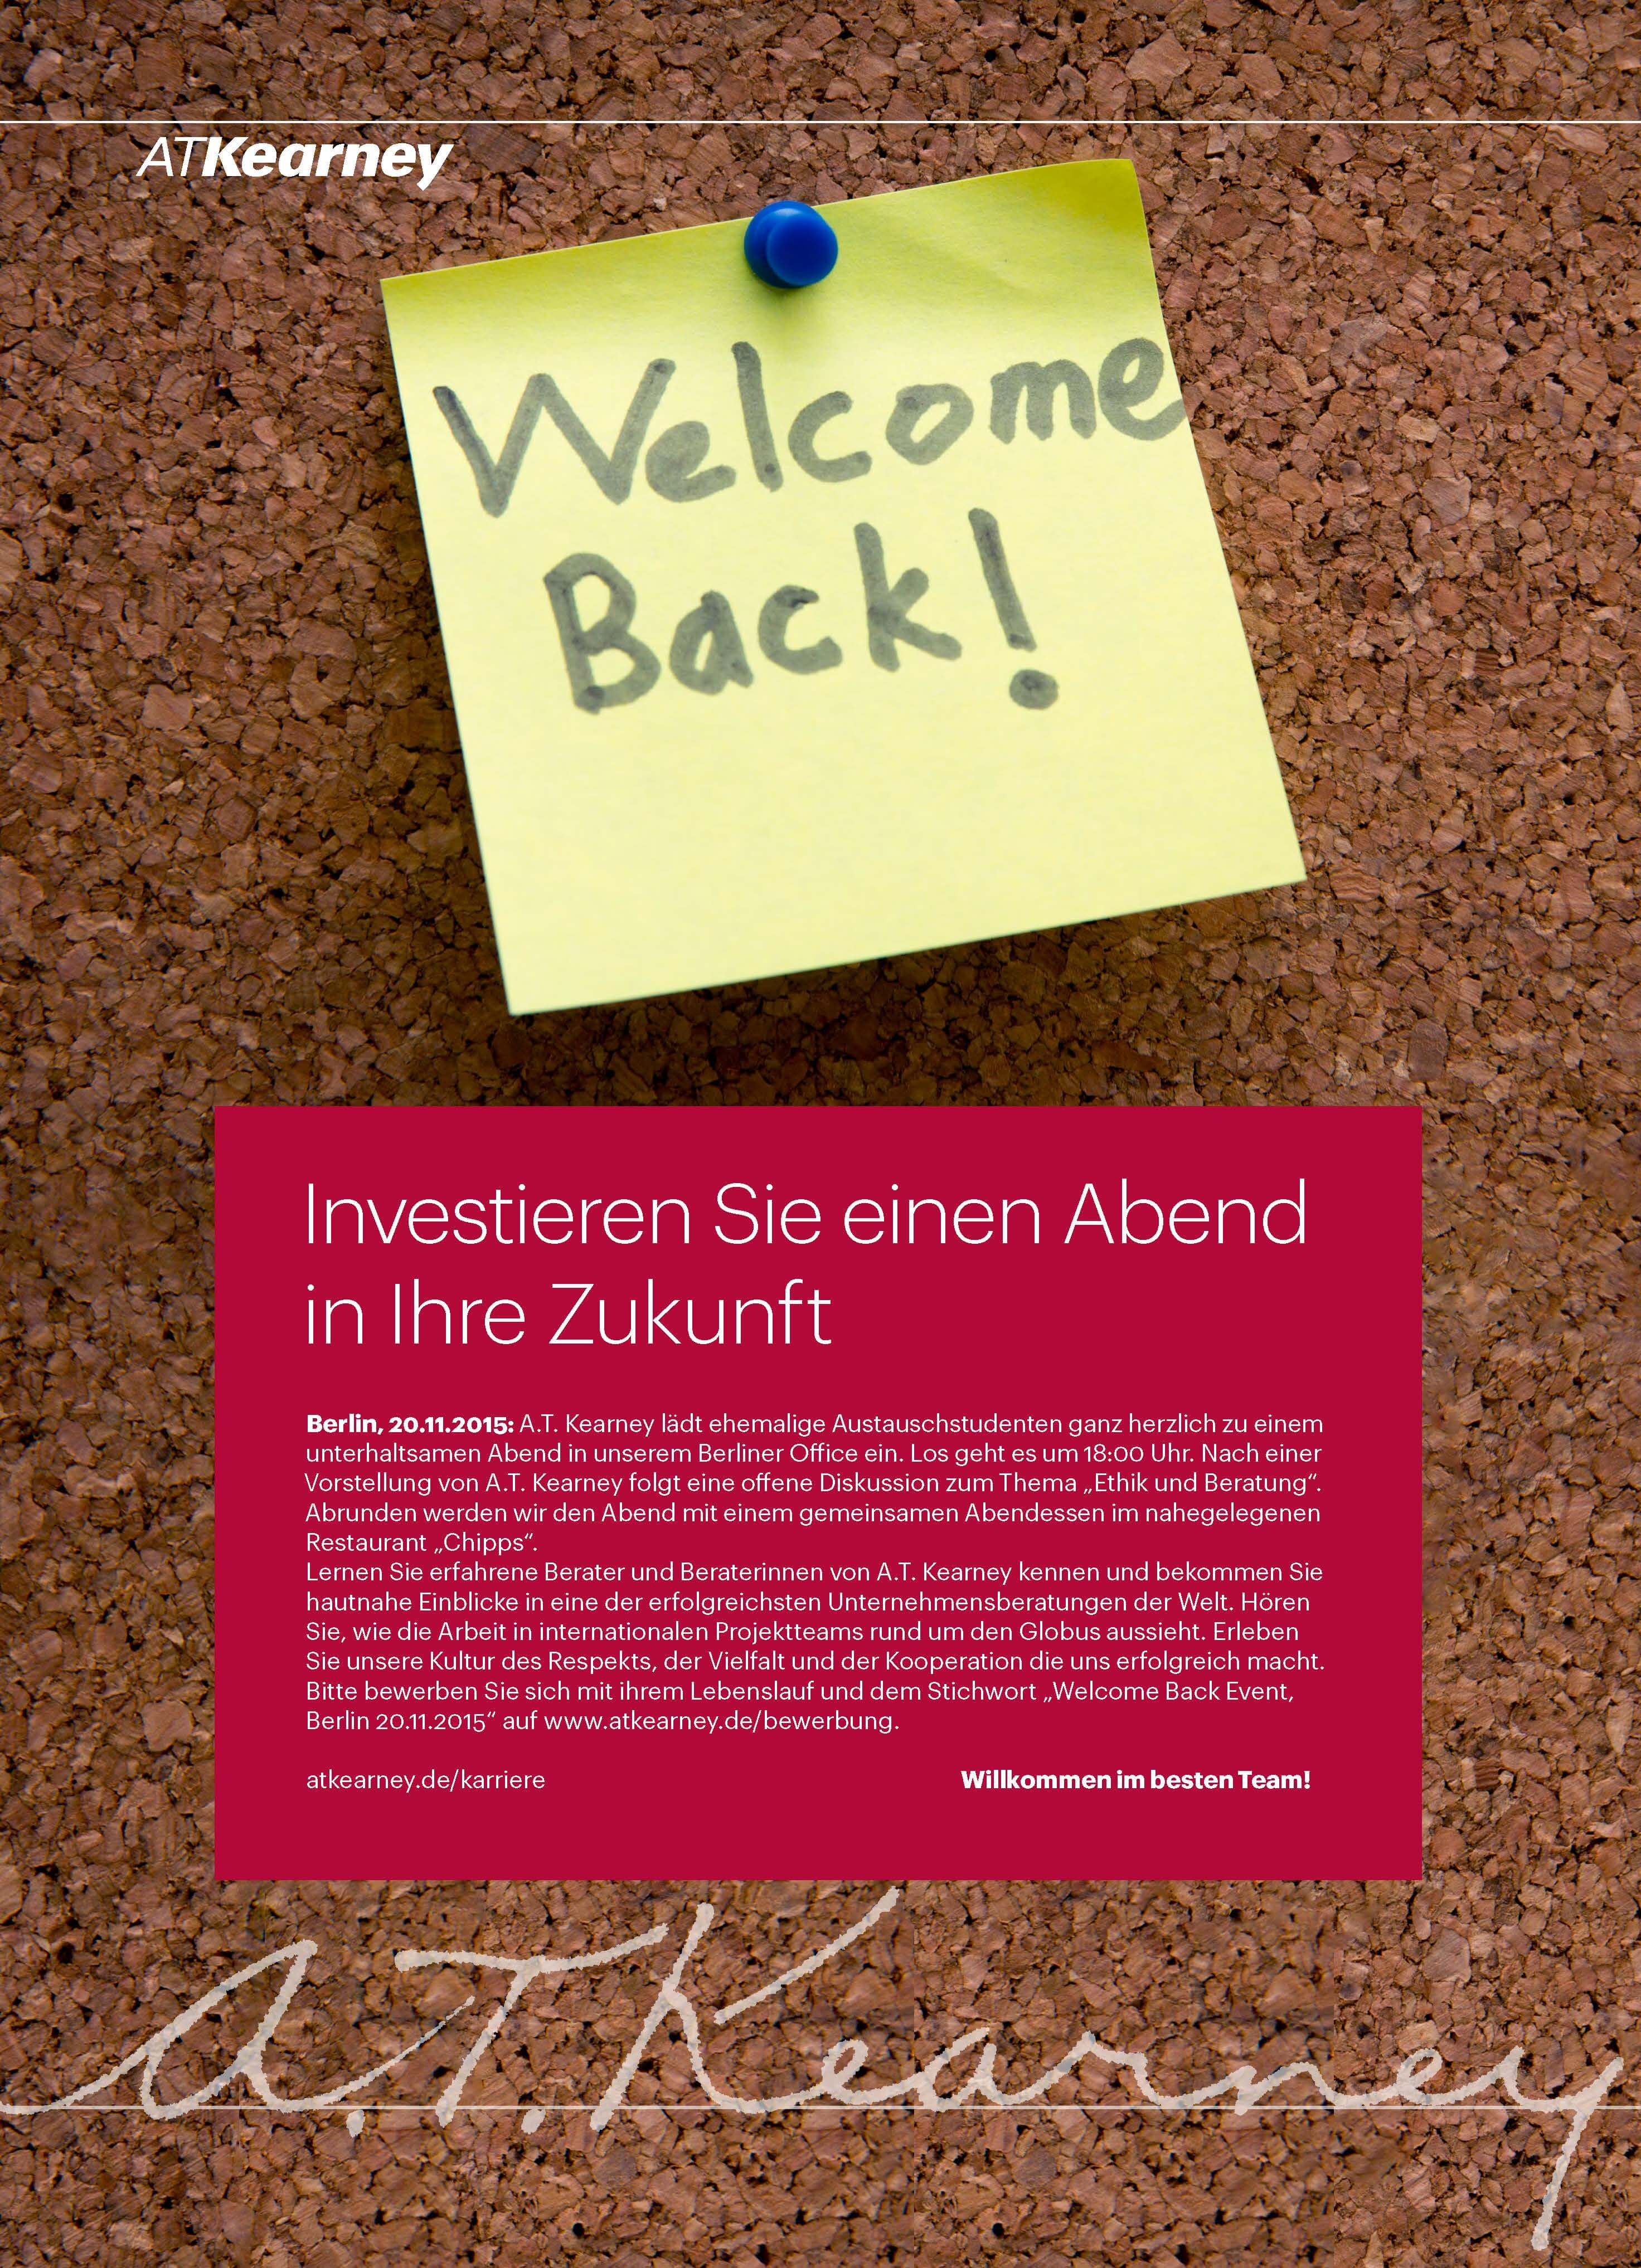 Welcome Back Event 20.11.2015 A.T. Kearney